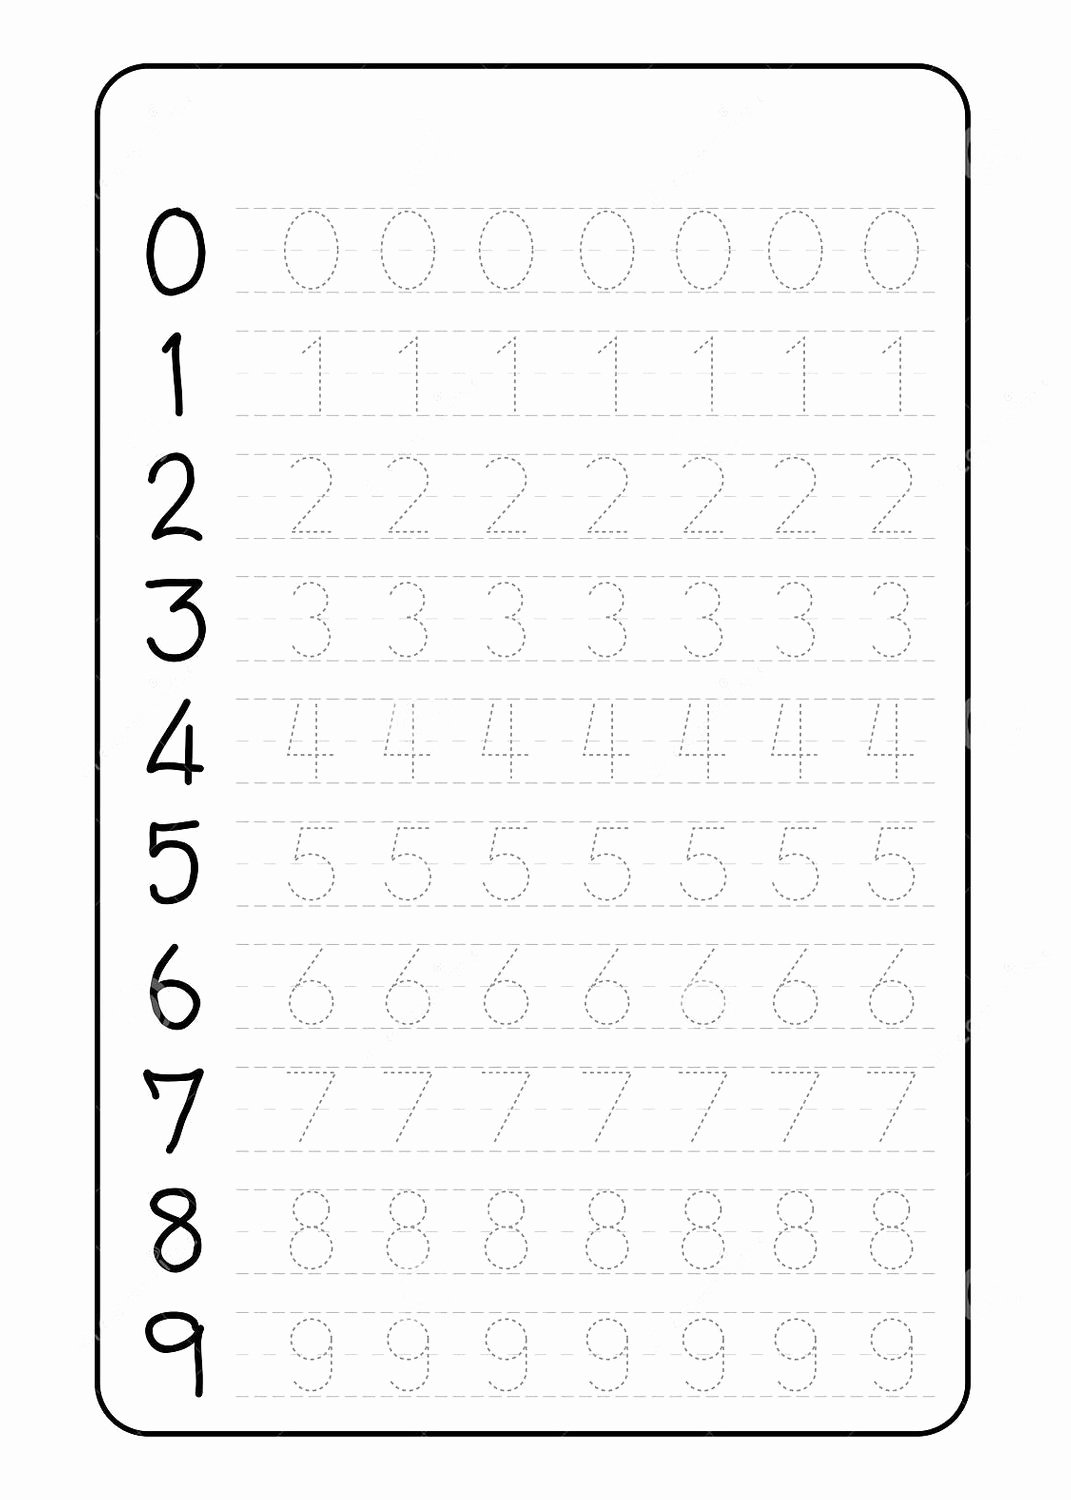 Tracing Numbers Worksheets for Preschoolers Kids Number Trace Worksheets Preschool Tracing for Magic Math